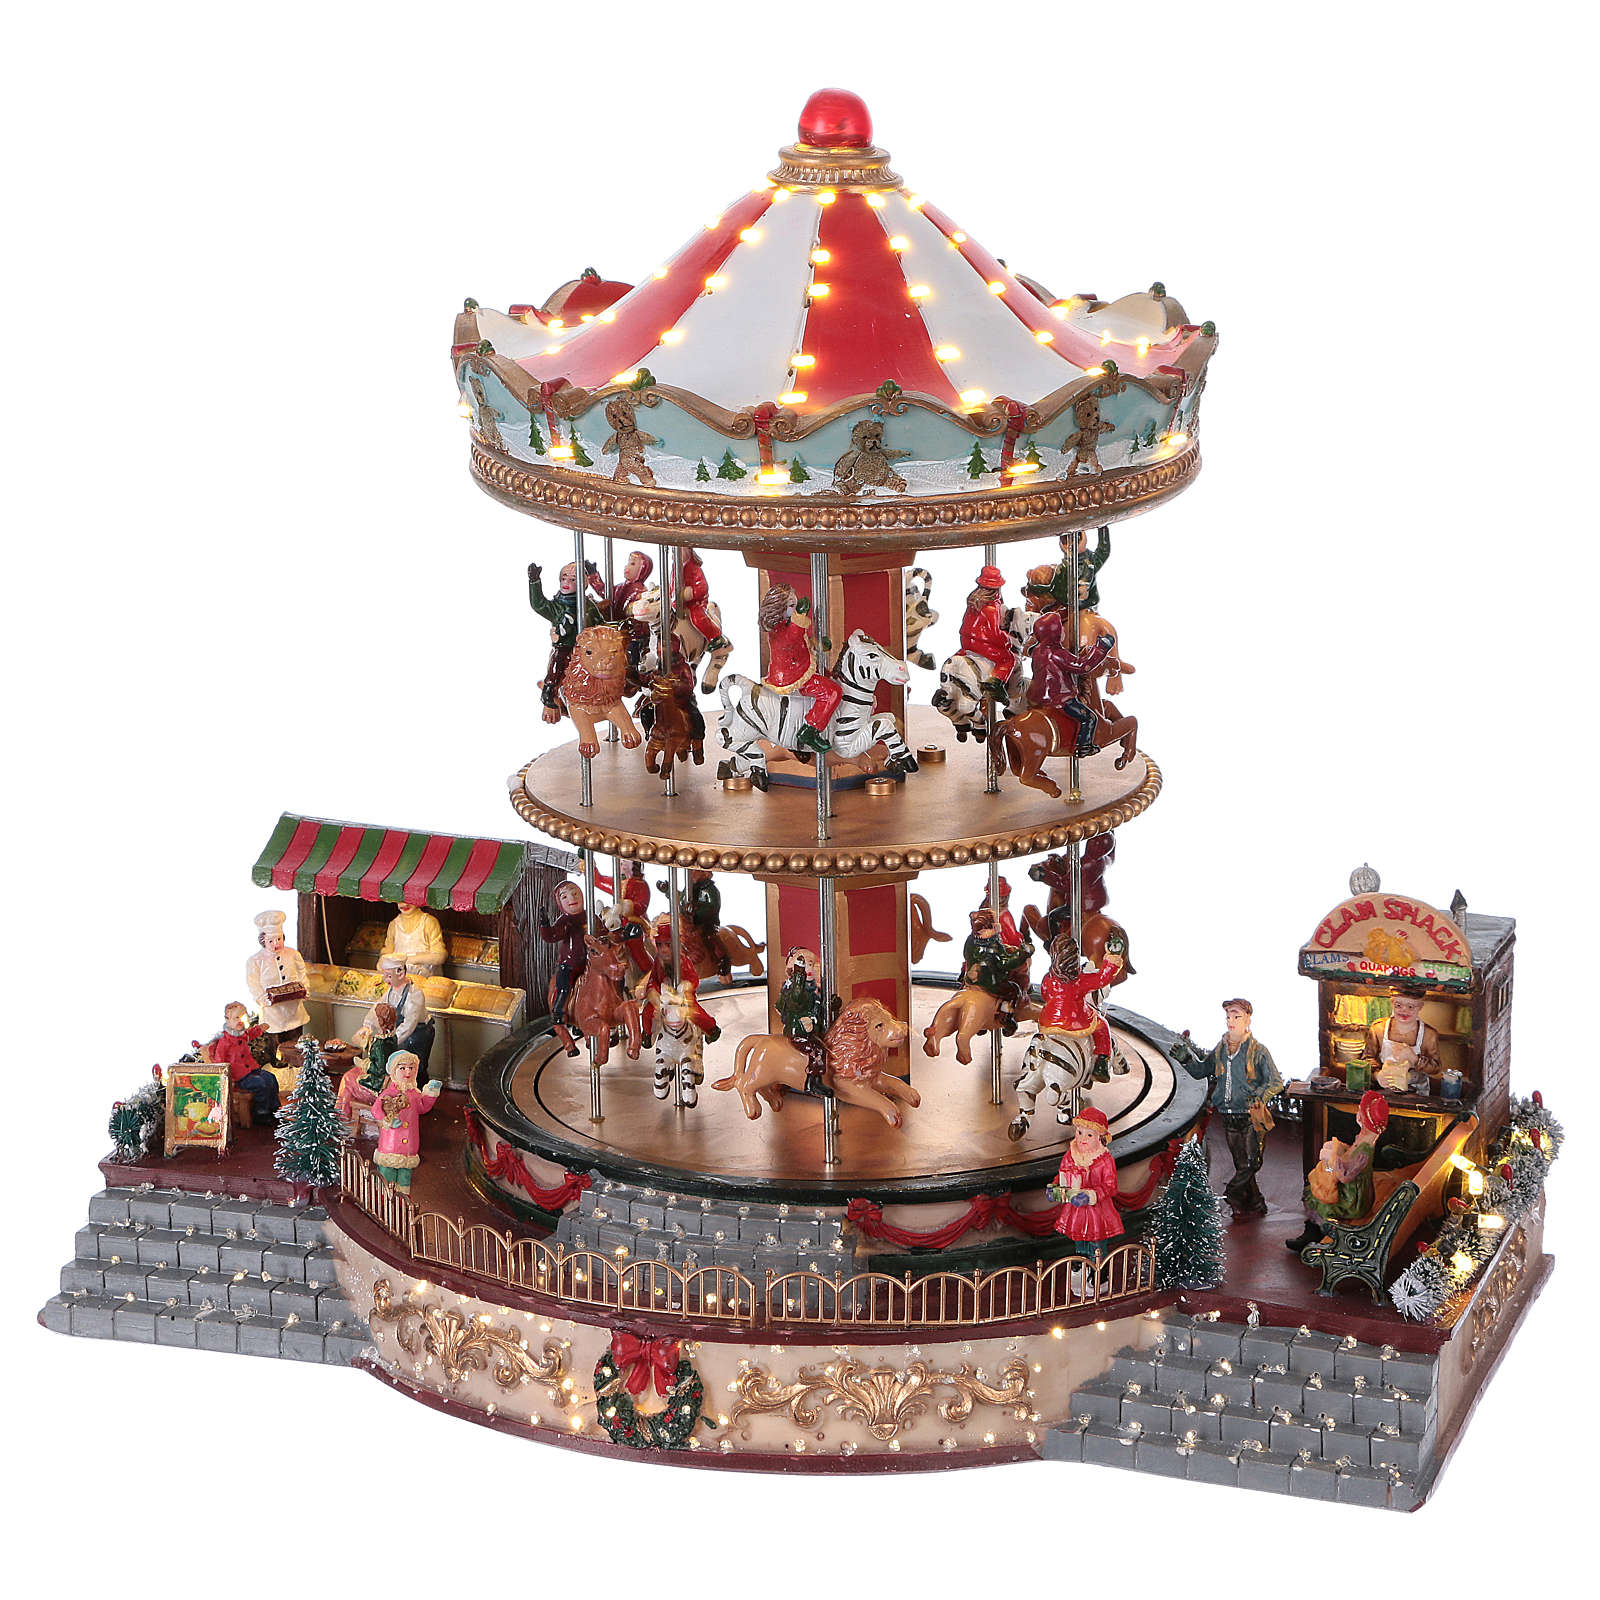 Illuminated Christmas Town with Moving Merry Go Round with music 35x40x35 cm electric powered 3